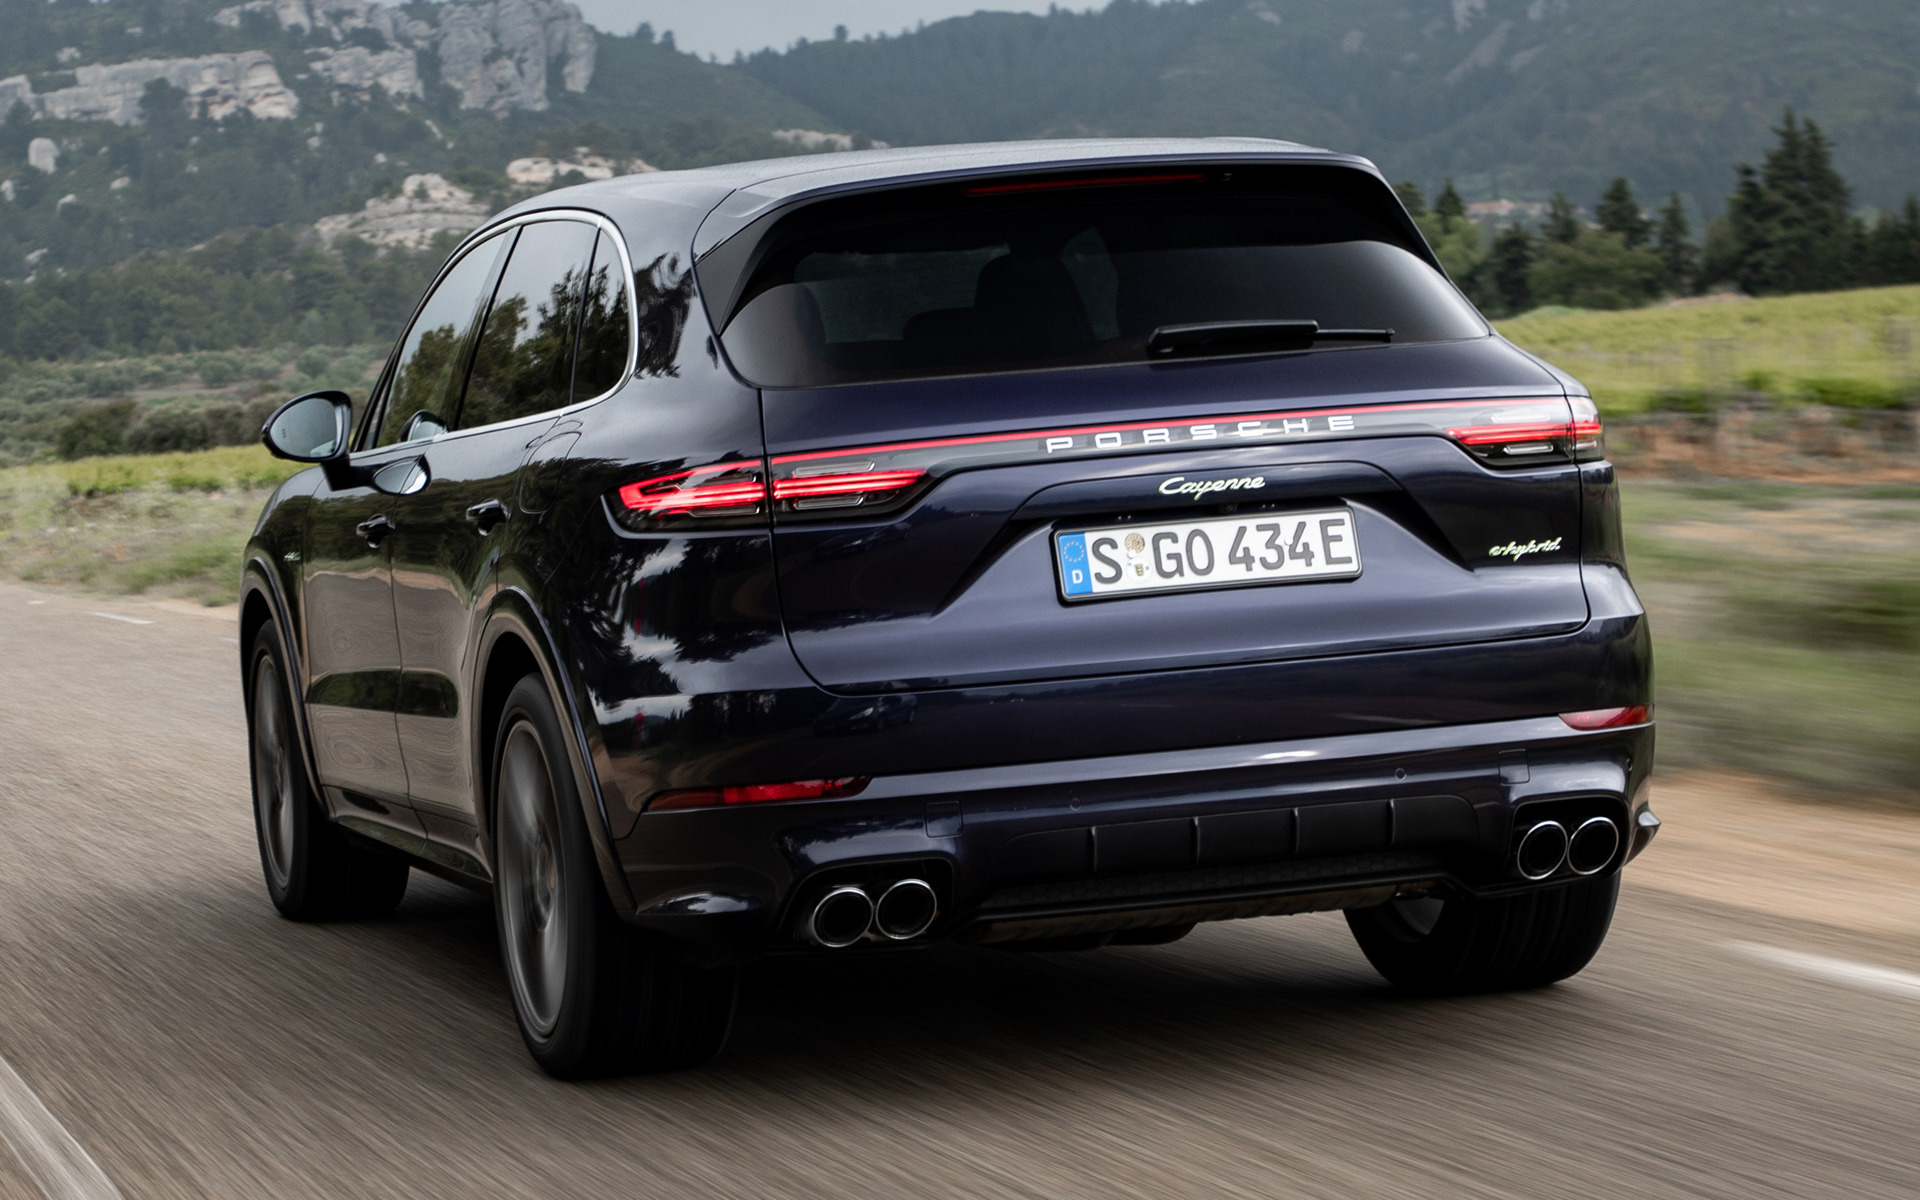 2018 Porsche Cayenne E-Hybrid SportDesign Package - Wallpapers and HD Images | Car Pixel